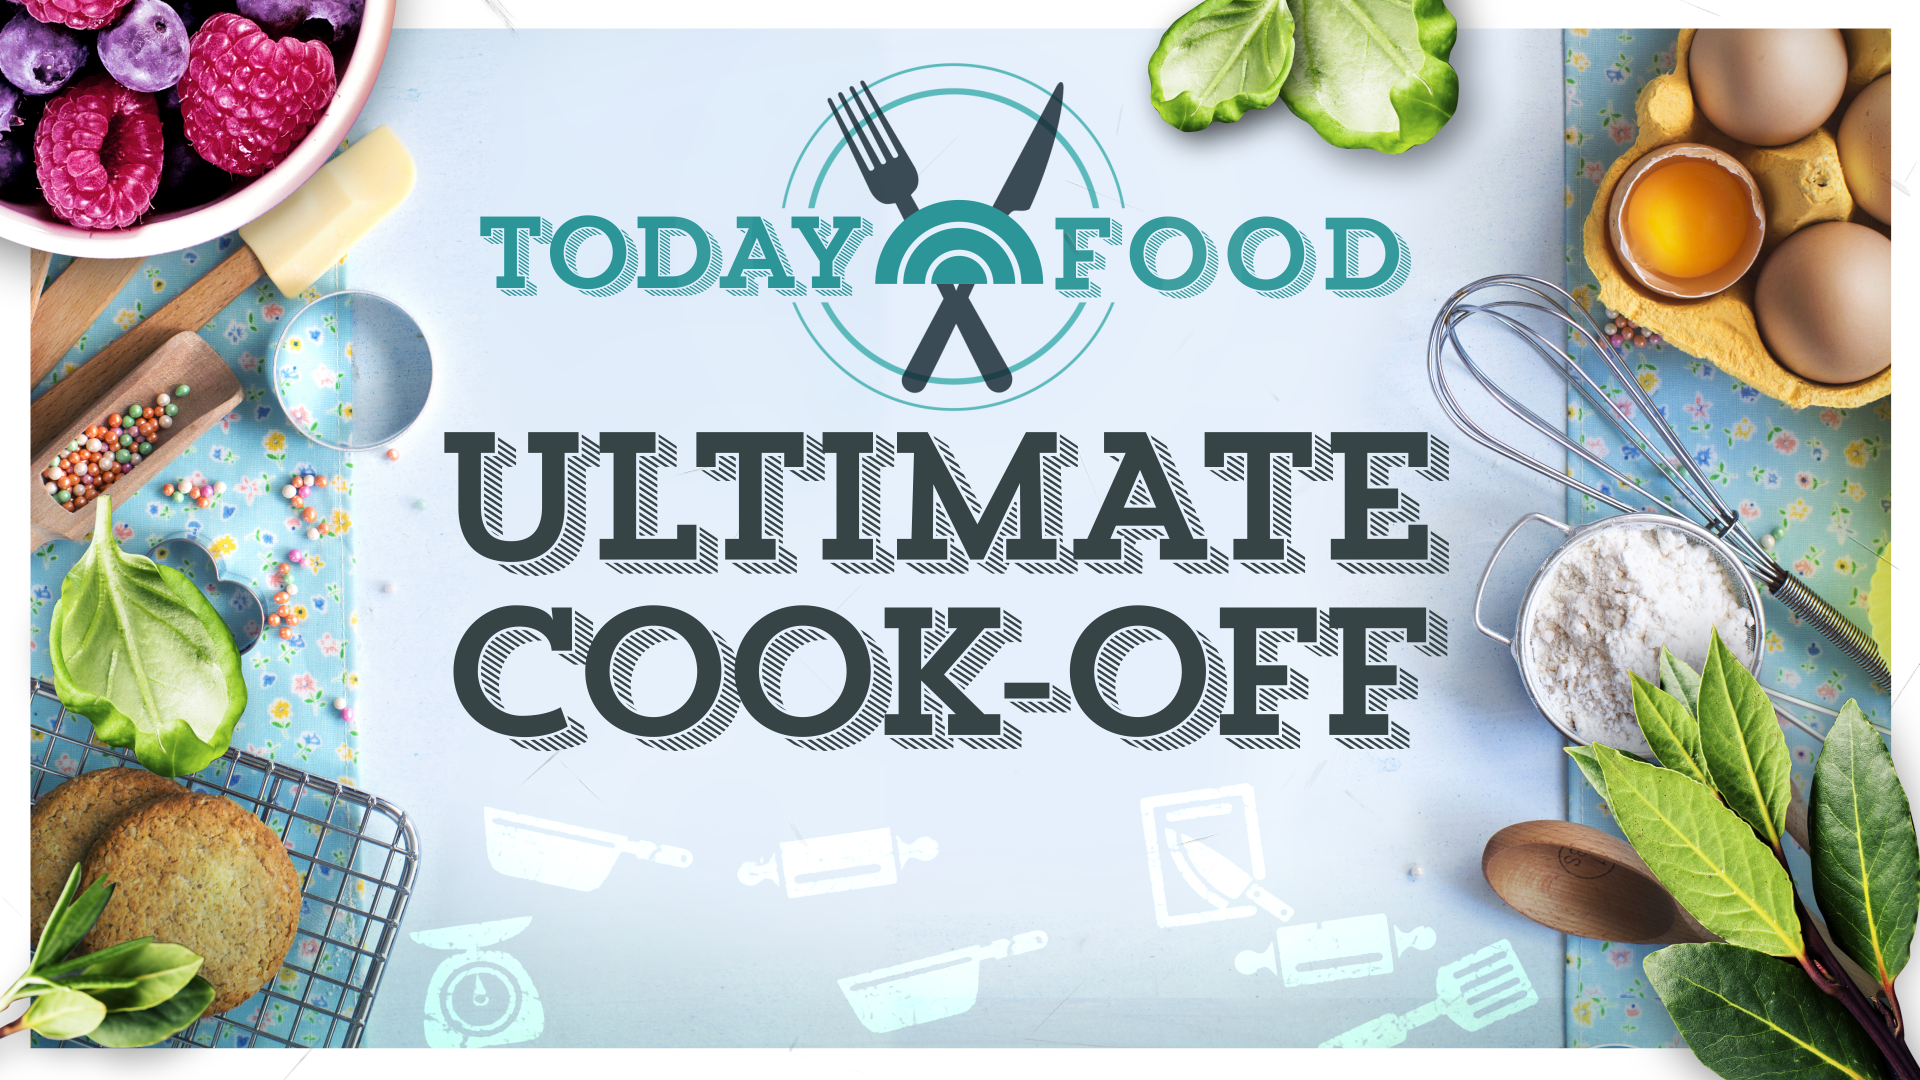 Enter todays ultimate cook off contest today enter todays ultimate cook off contest forumfinder Images